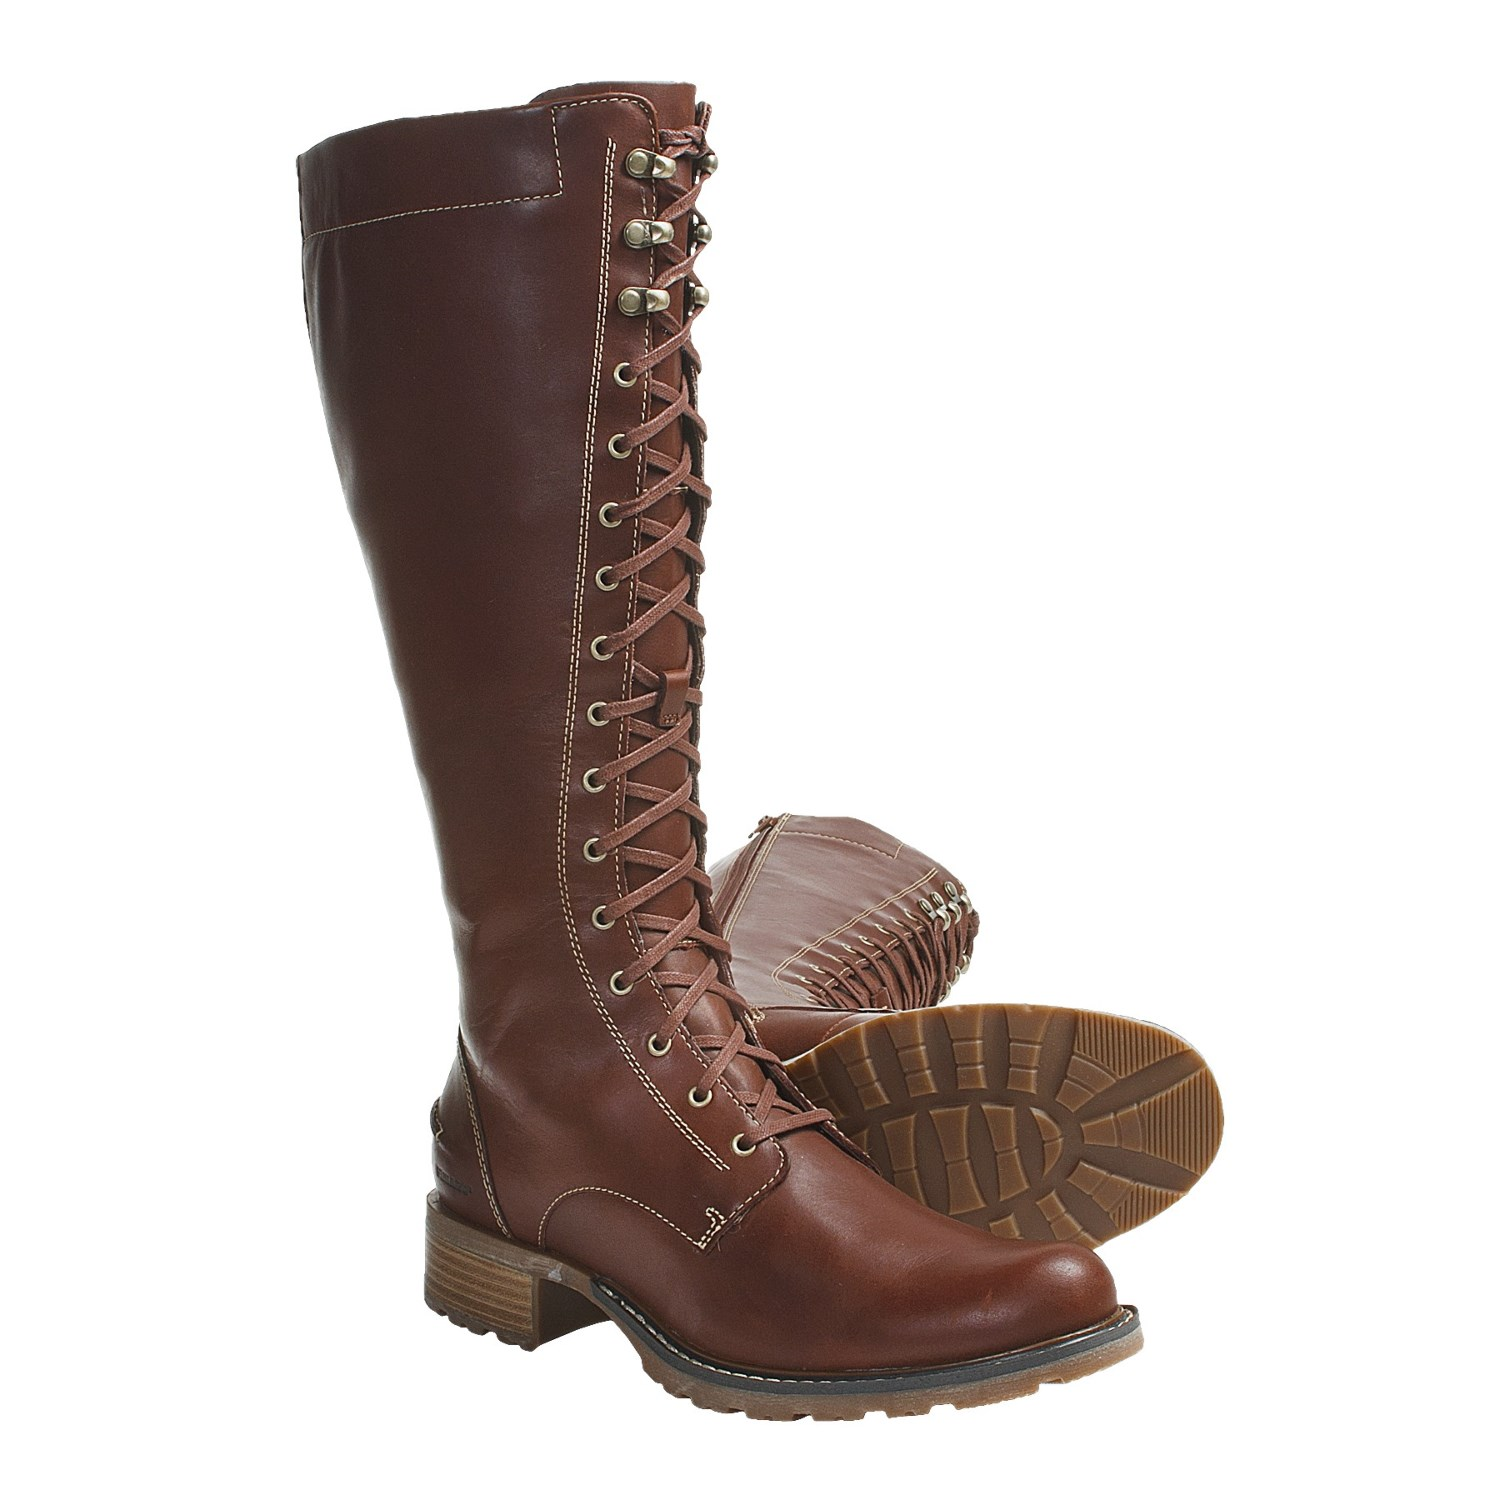 Womens Tall Brown Leather Boots Bsrjc Boots